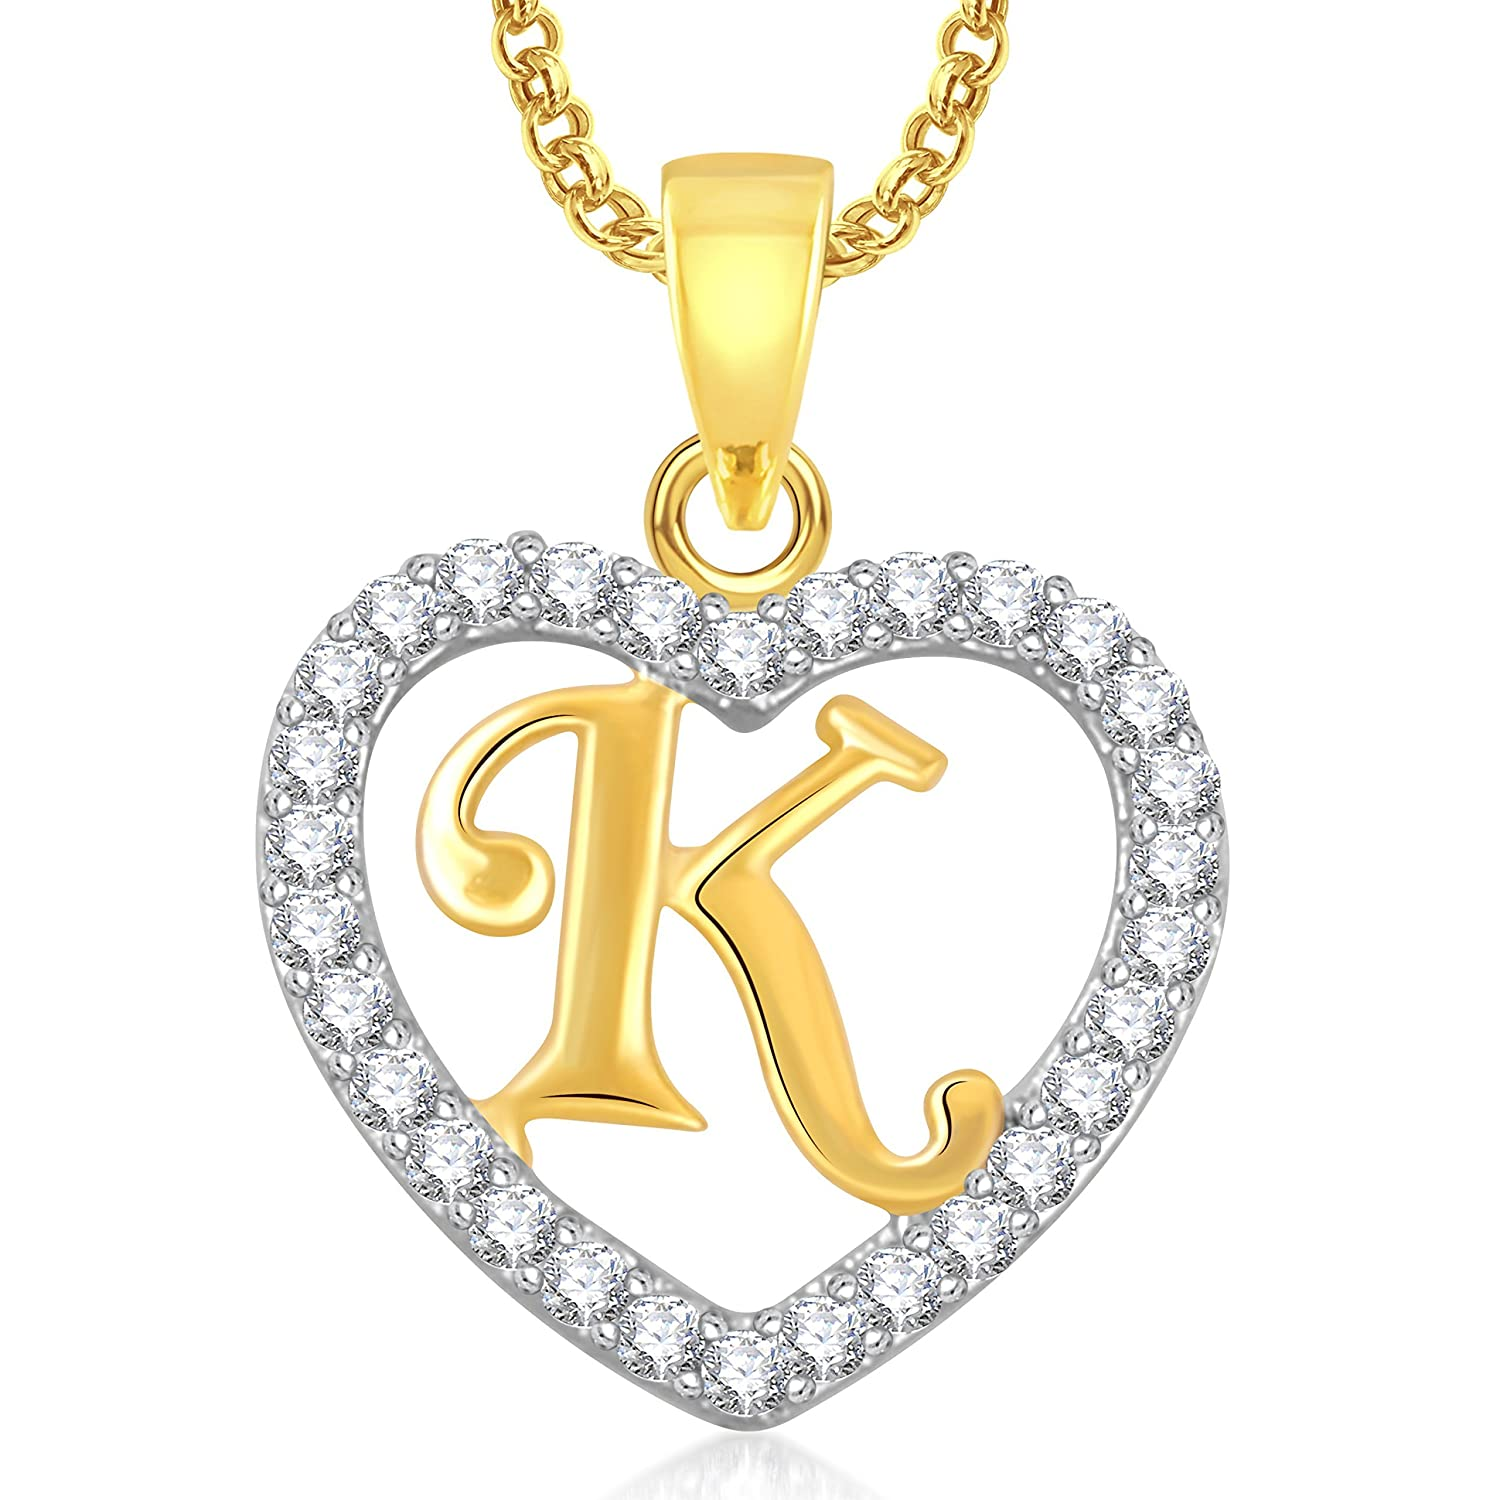 small pendants heart fit hei co tiffany fmt ed wid id m chain jewelry in gold constrain g locket necklaces pendant